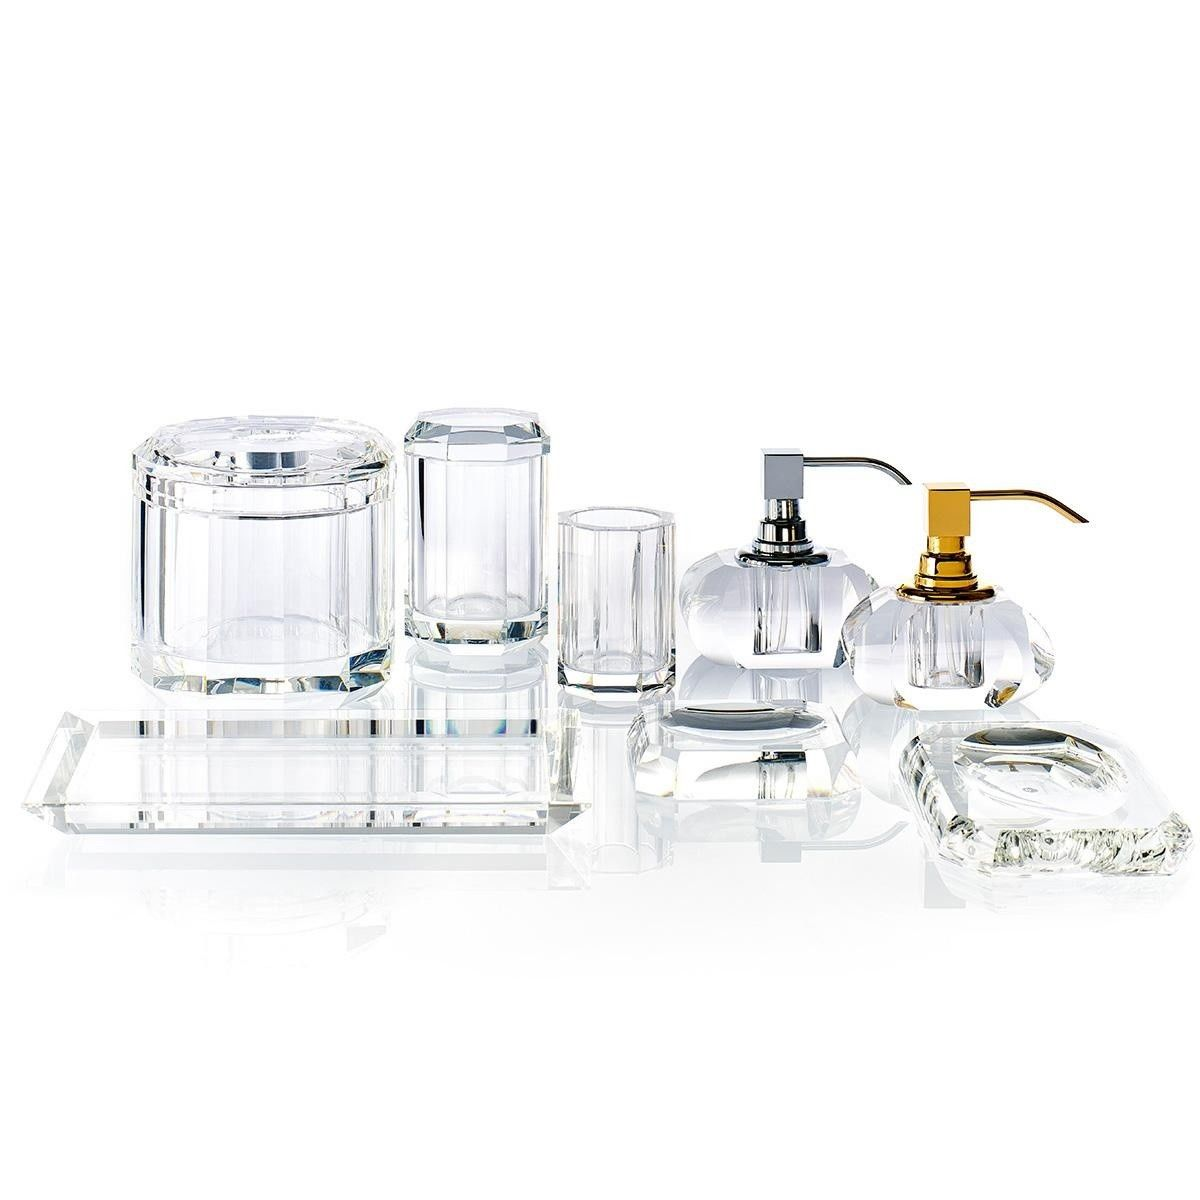 ... Bathroom Accessories Set Soap · Kr Ssp Kristall Soap Dispenser Decor  Walther Ambientedirect Com